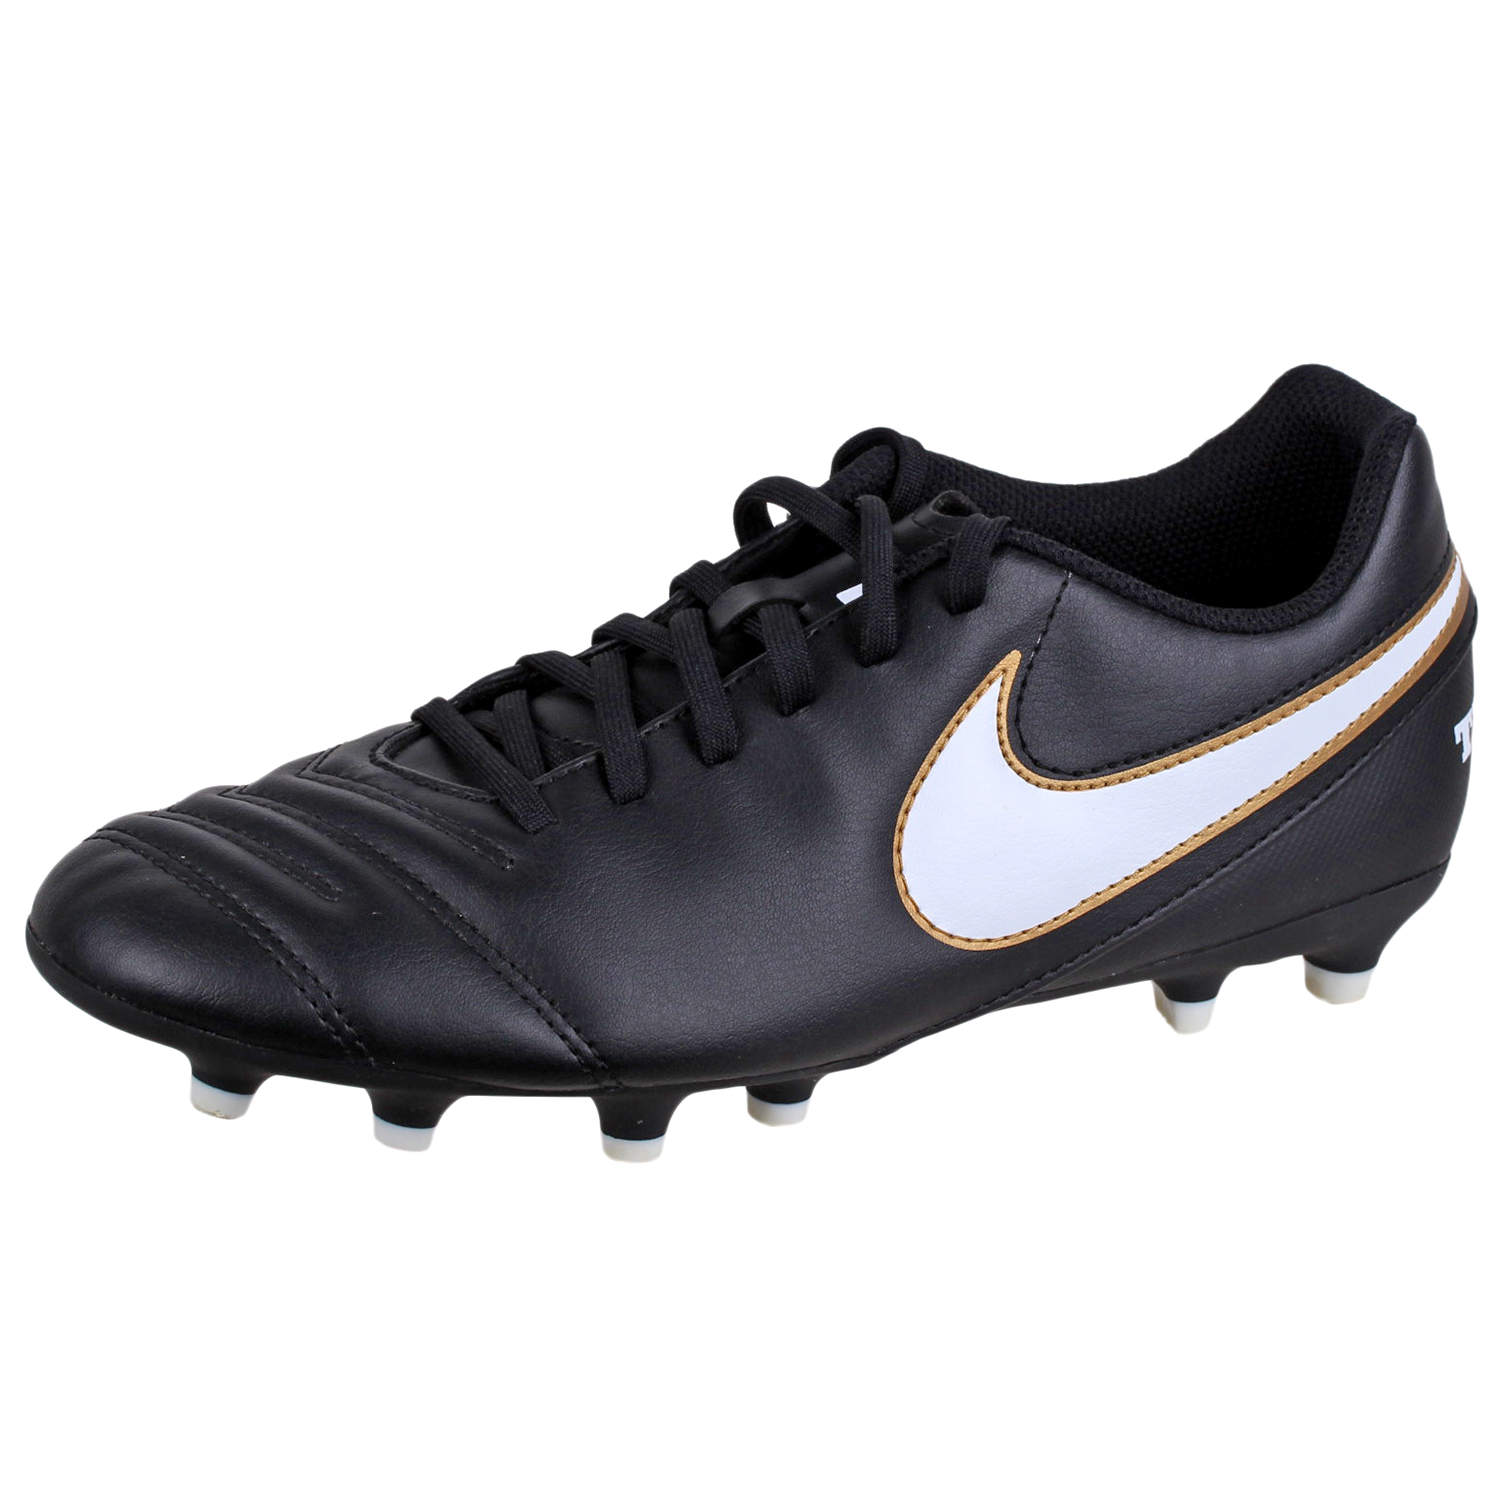 info for 4952c ed032 Details about Nike Mens Tiempo Rio III FG Soccer Cleat Shoe Black White 7.5